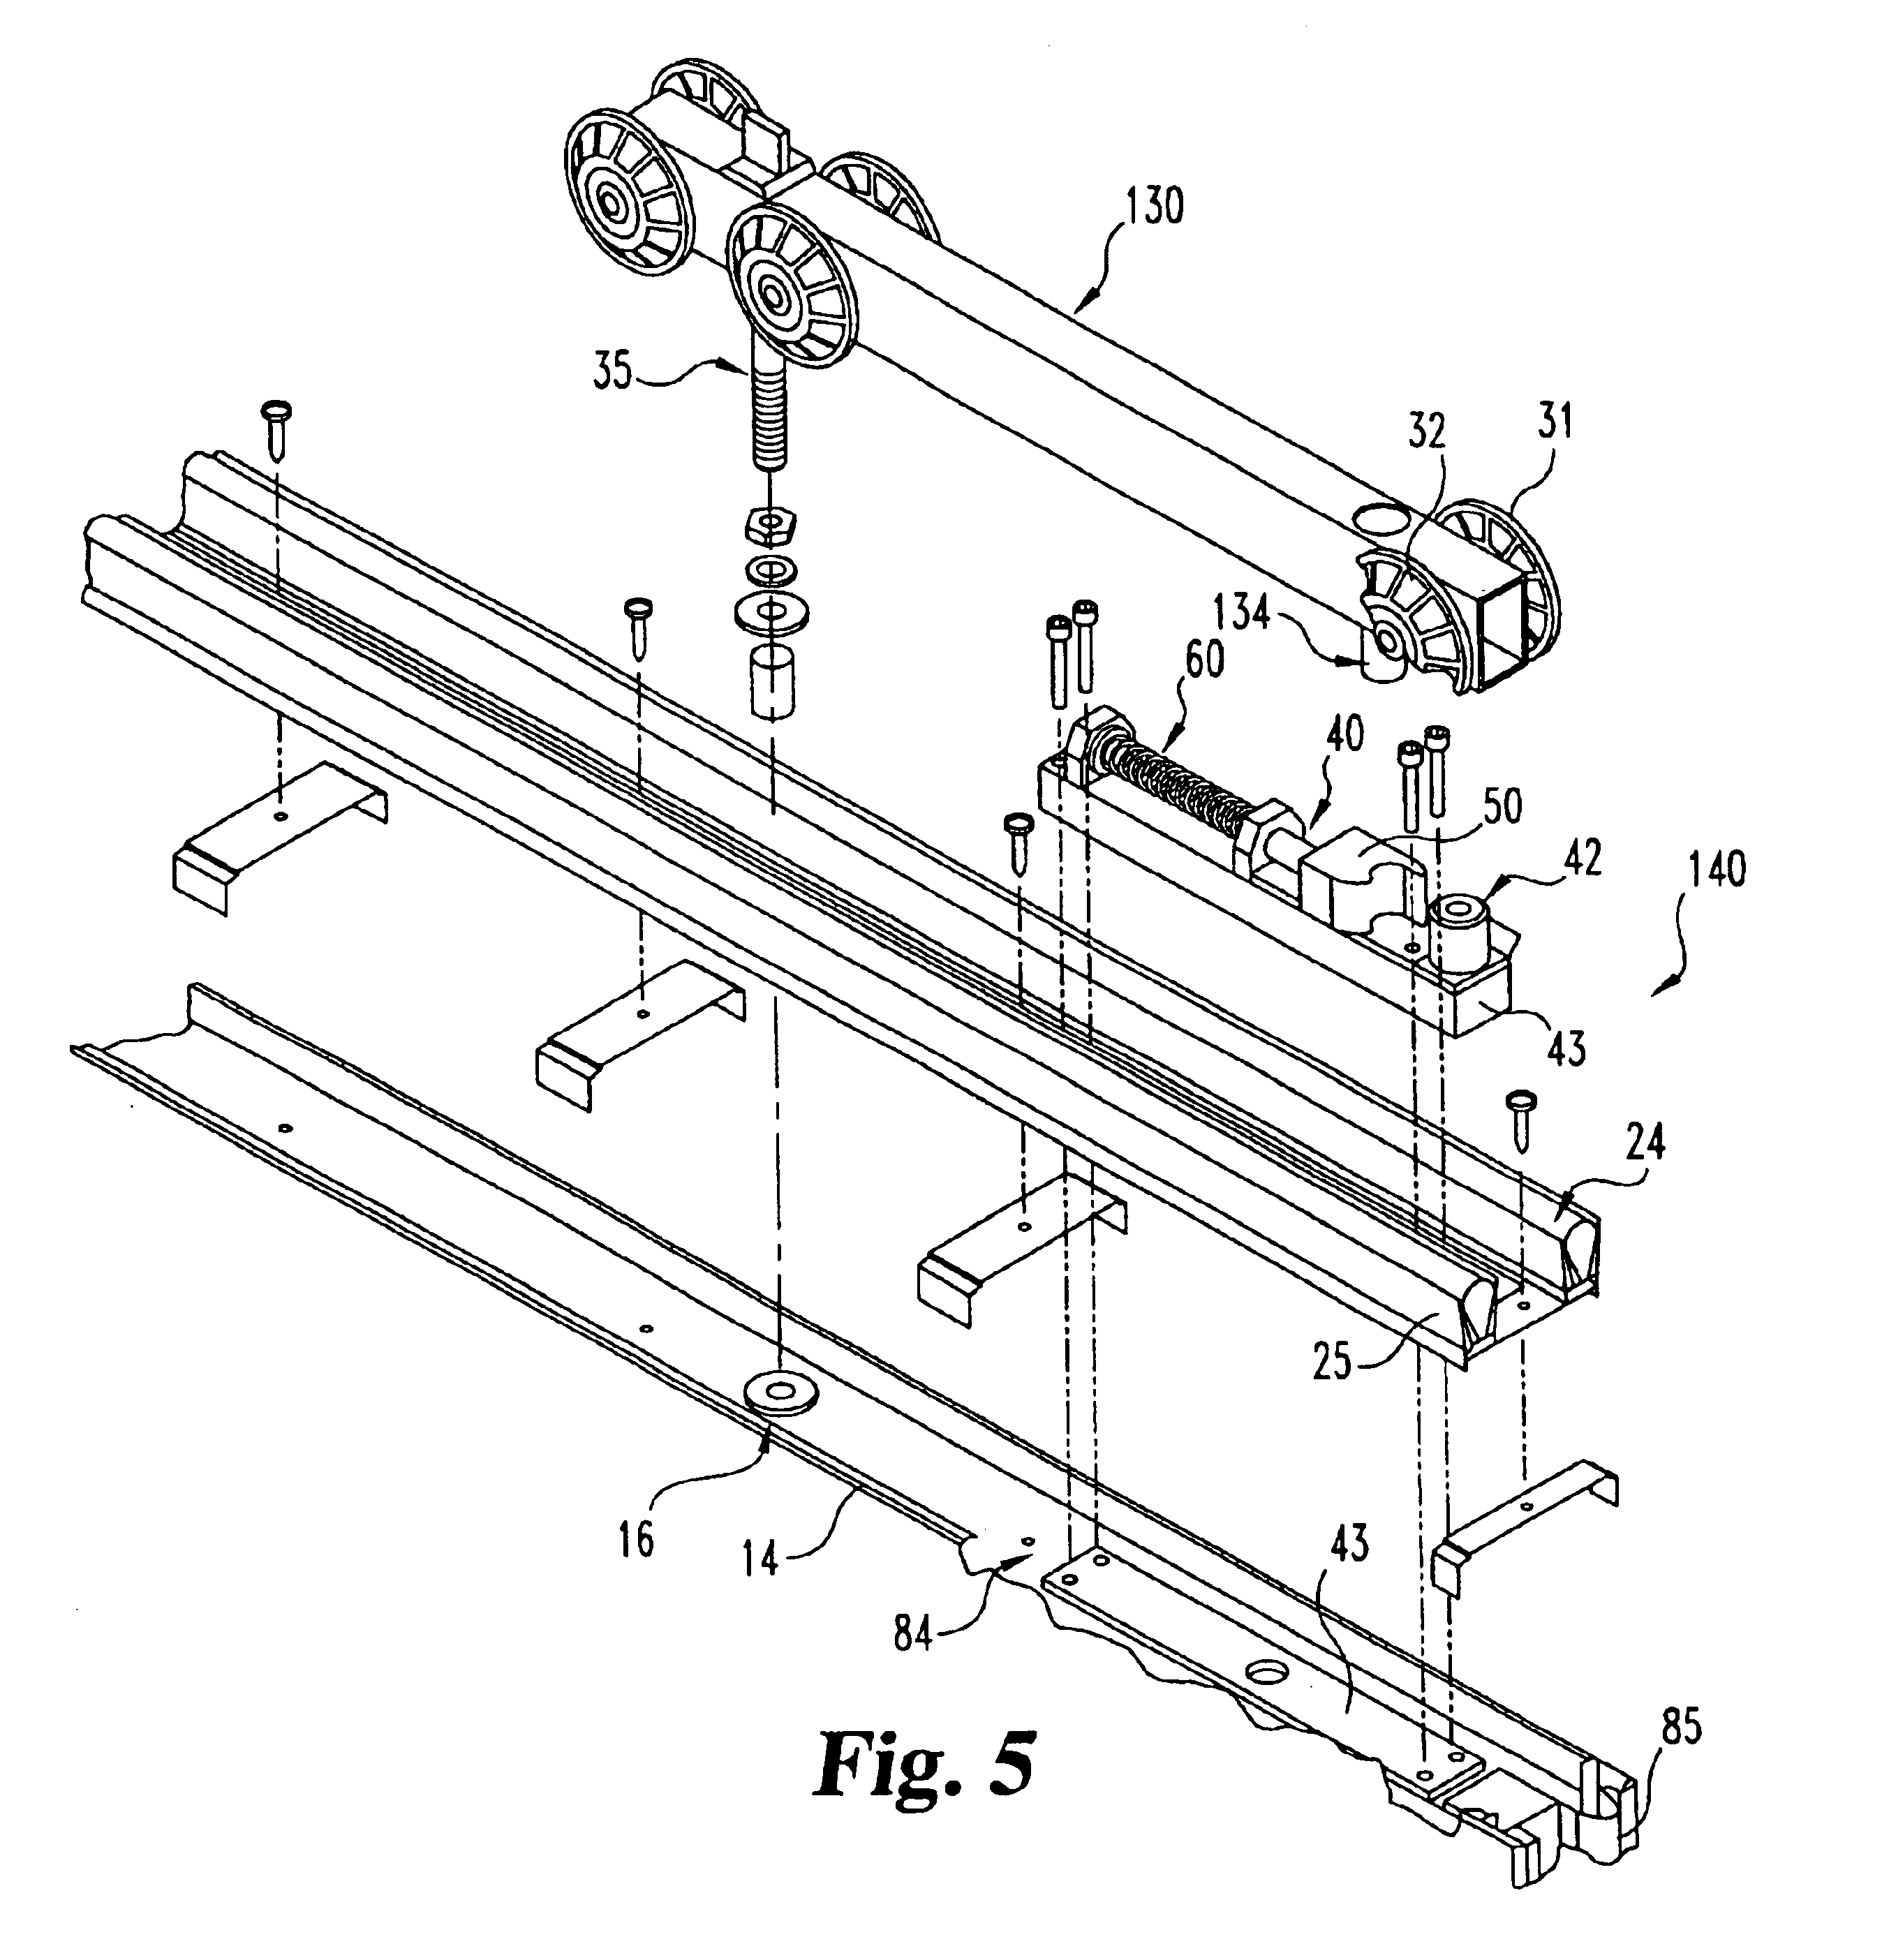 Patent Us6715530 Latch Assembly System For Operable Wall Panels 2008 Mitsubishi Lancer Engine Diagram Drawing